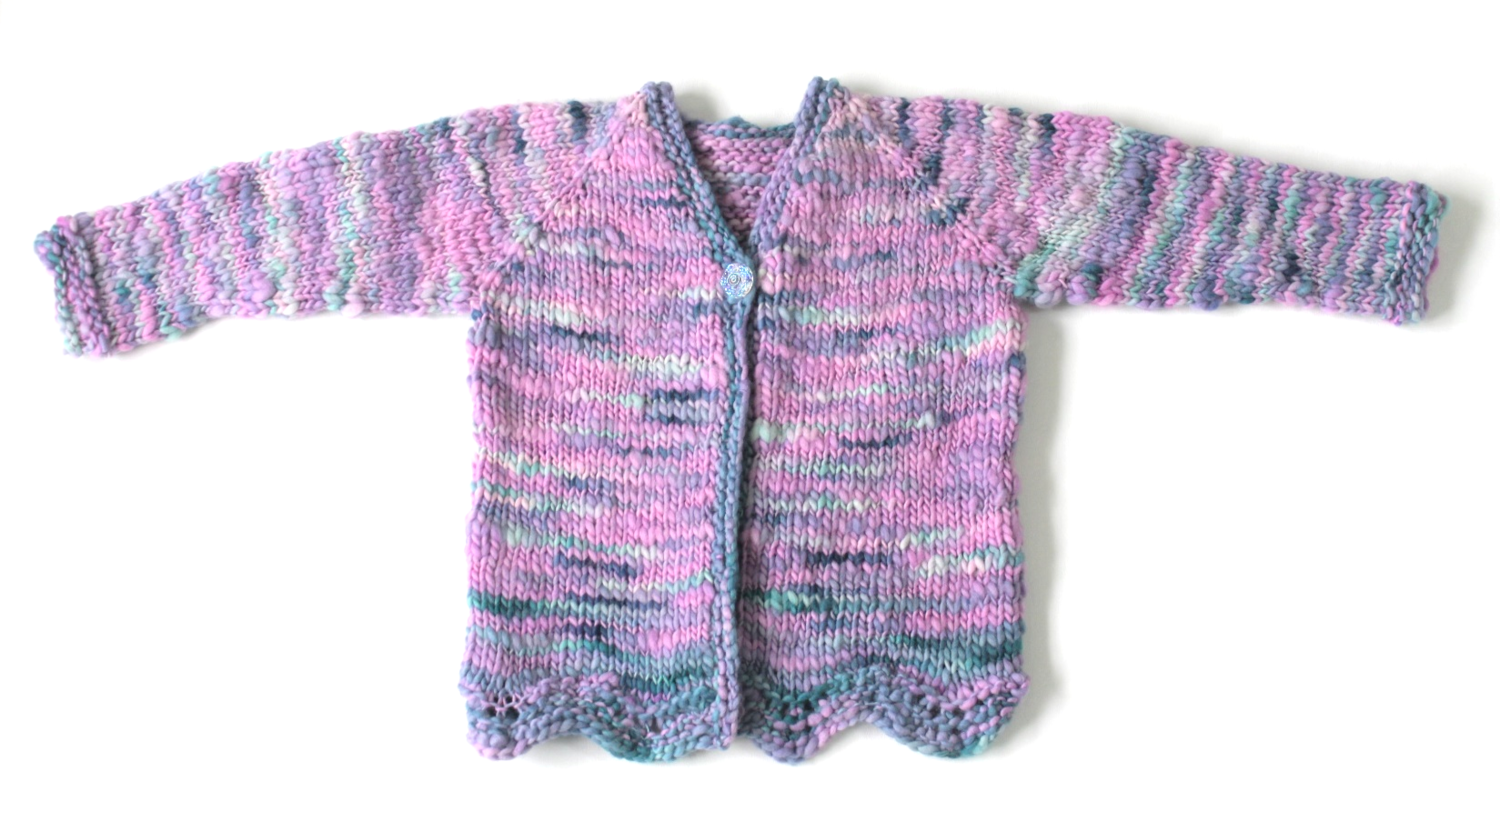 Mermaid Cardigan SAMPLE - size 4 child sweater